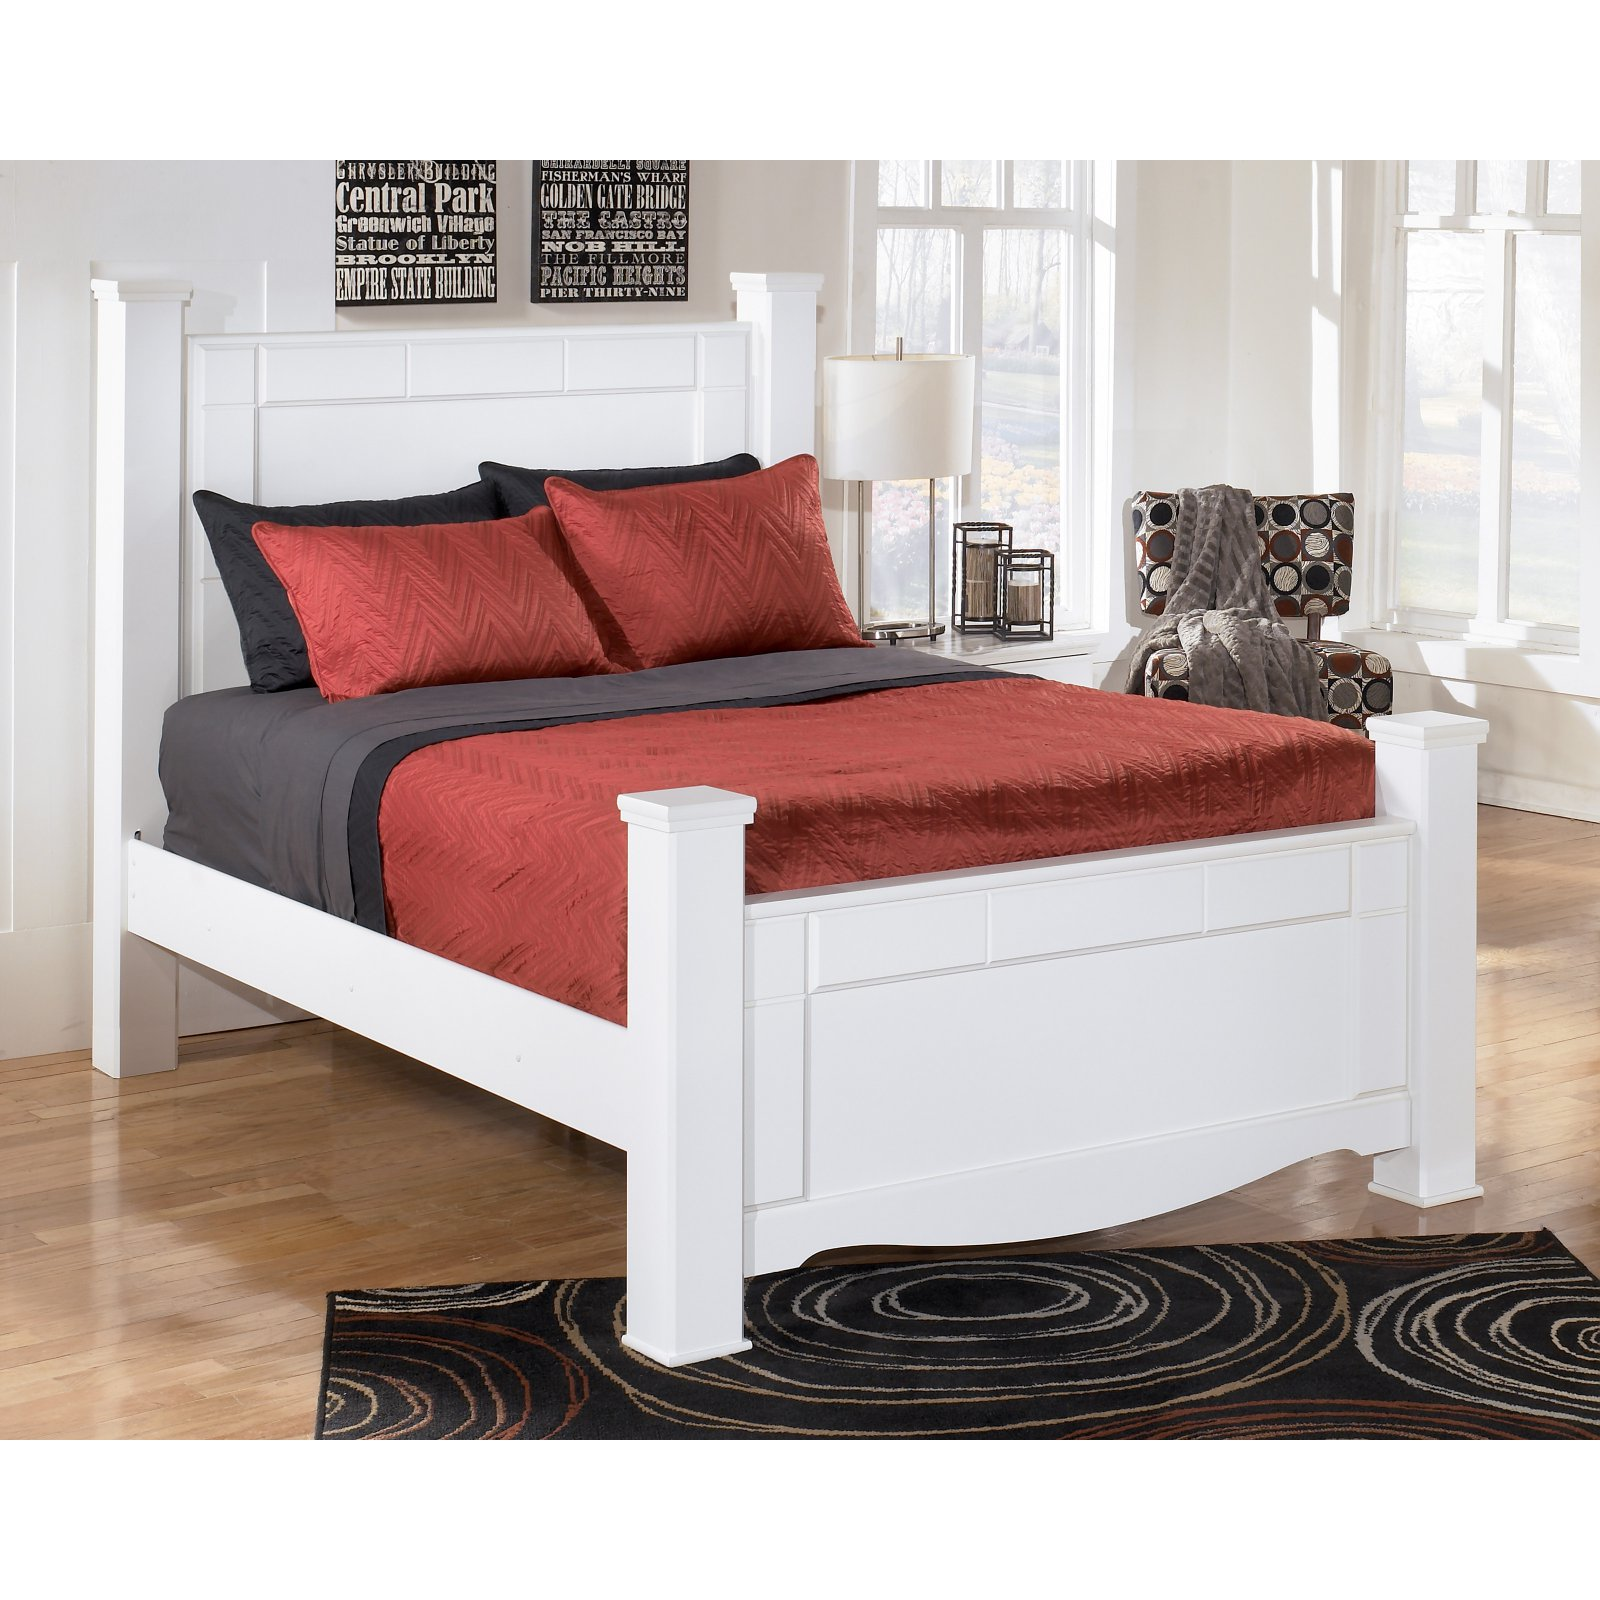 Signature Design by Ashley Weeki Poster Bed